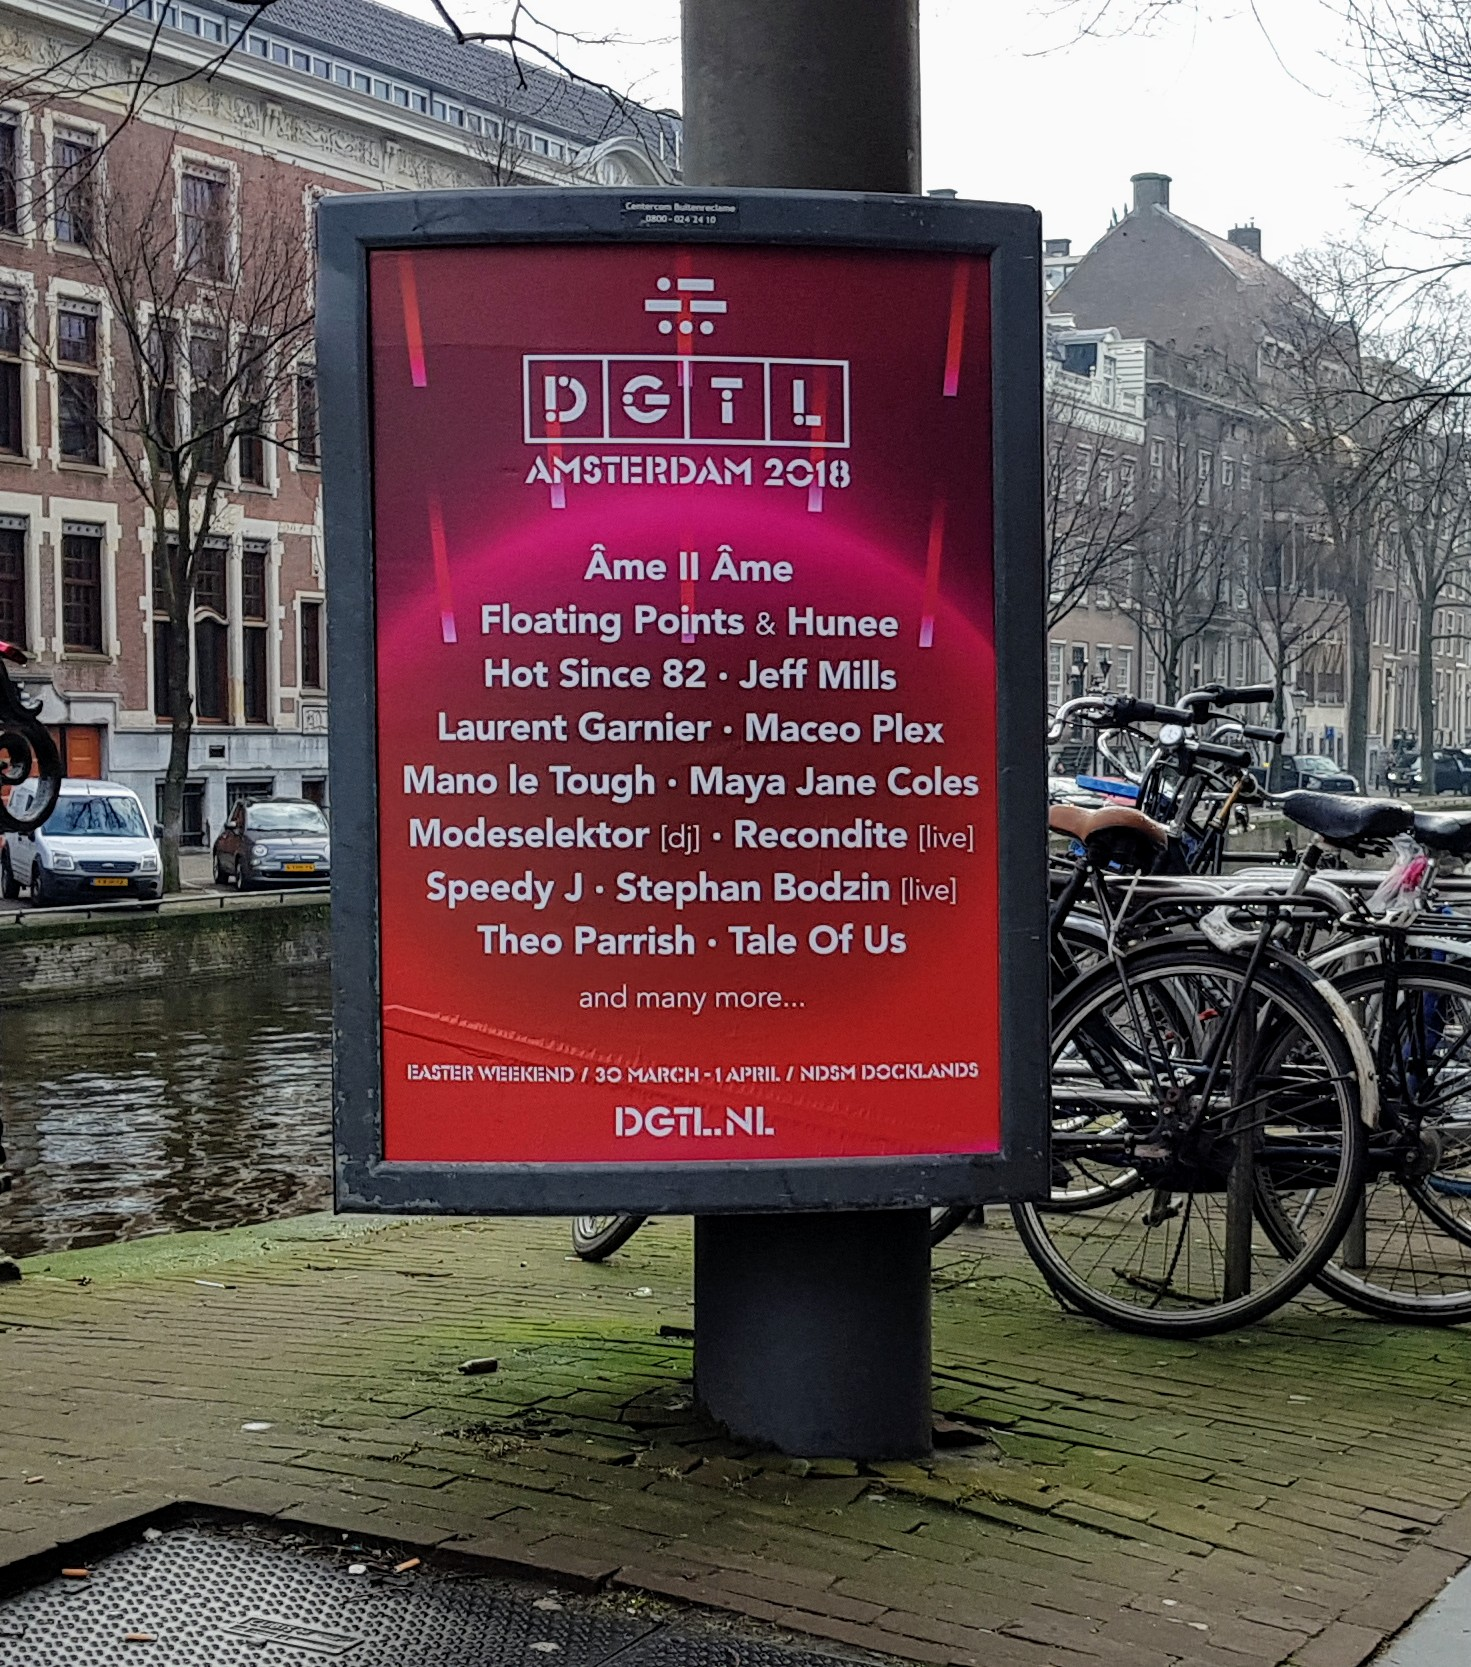 30 Everyday Things in Amsterdam: (8) Event posters | The